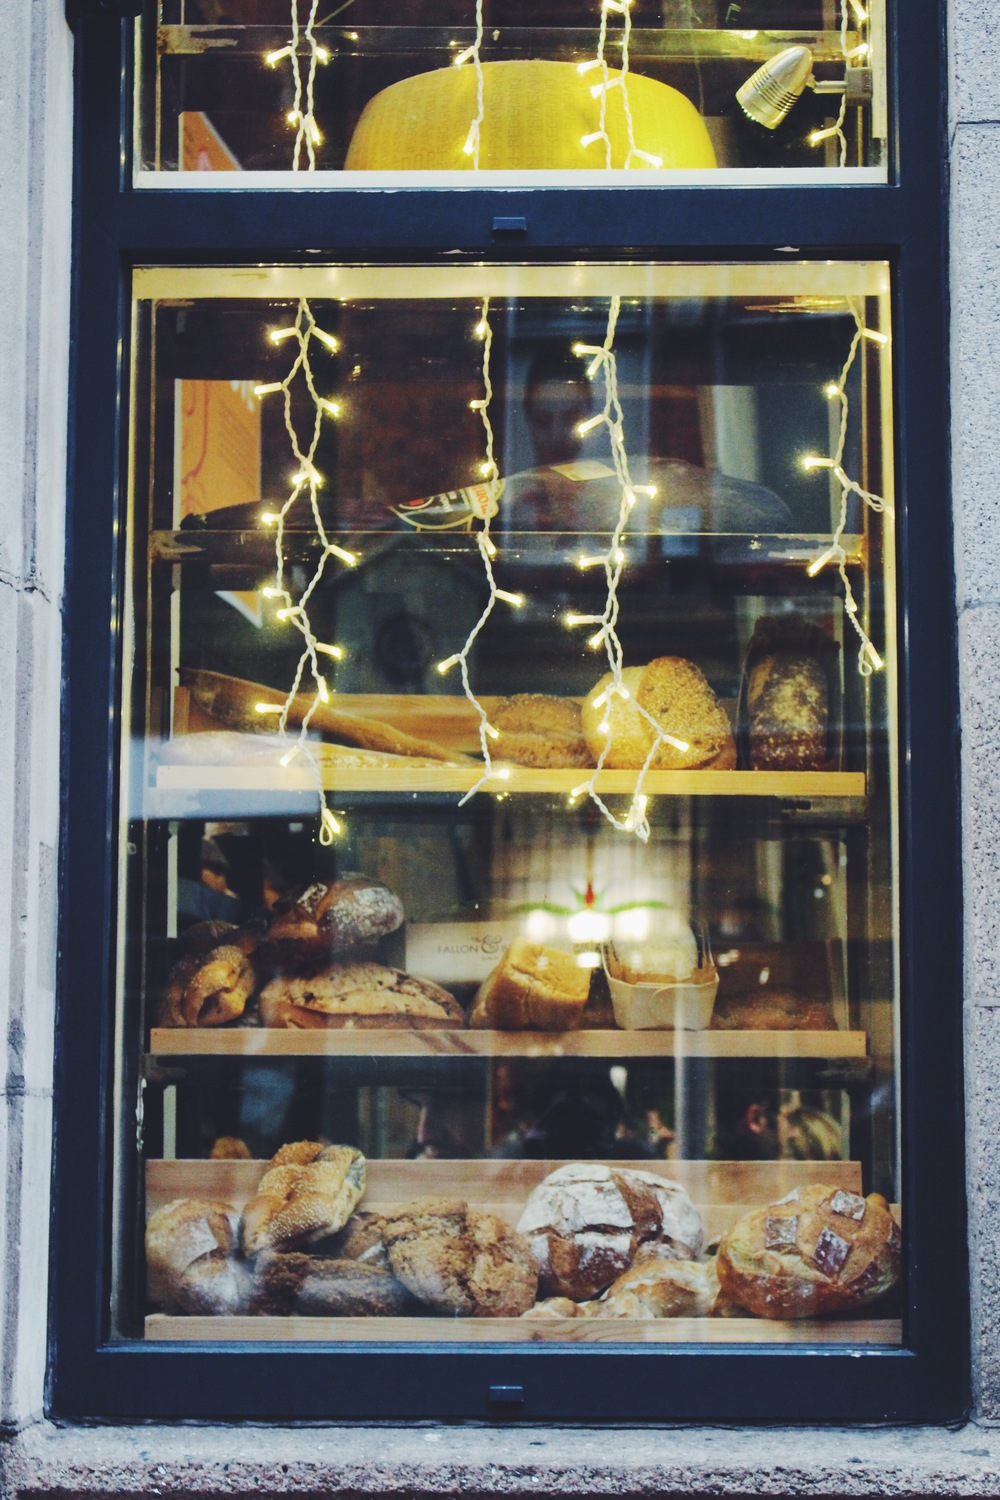 fallon dublin bread in window.jpg